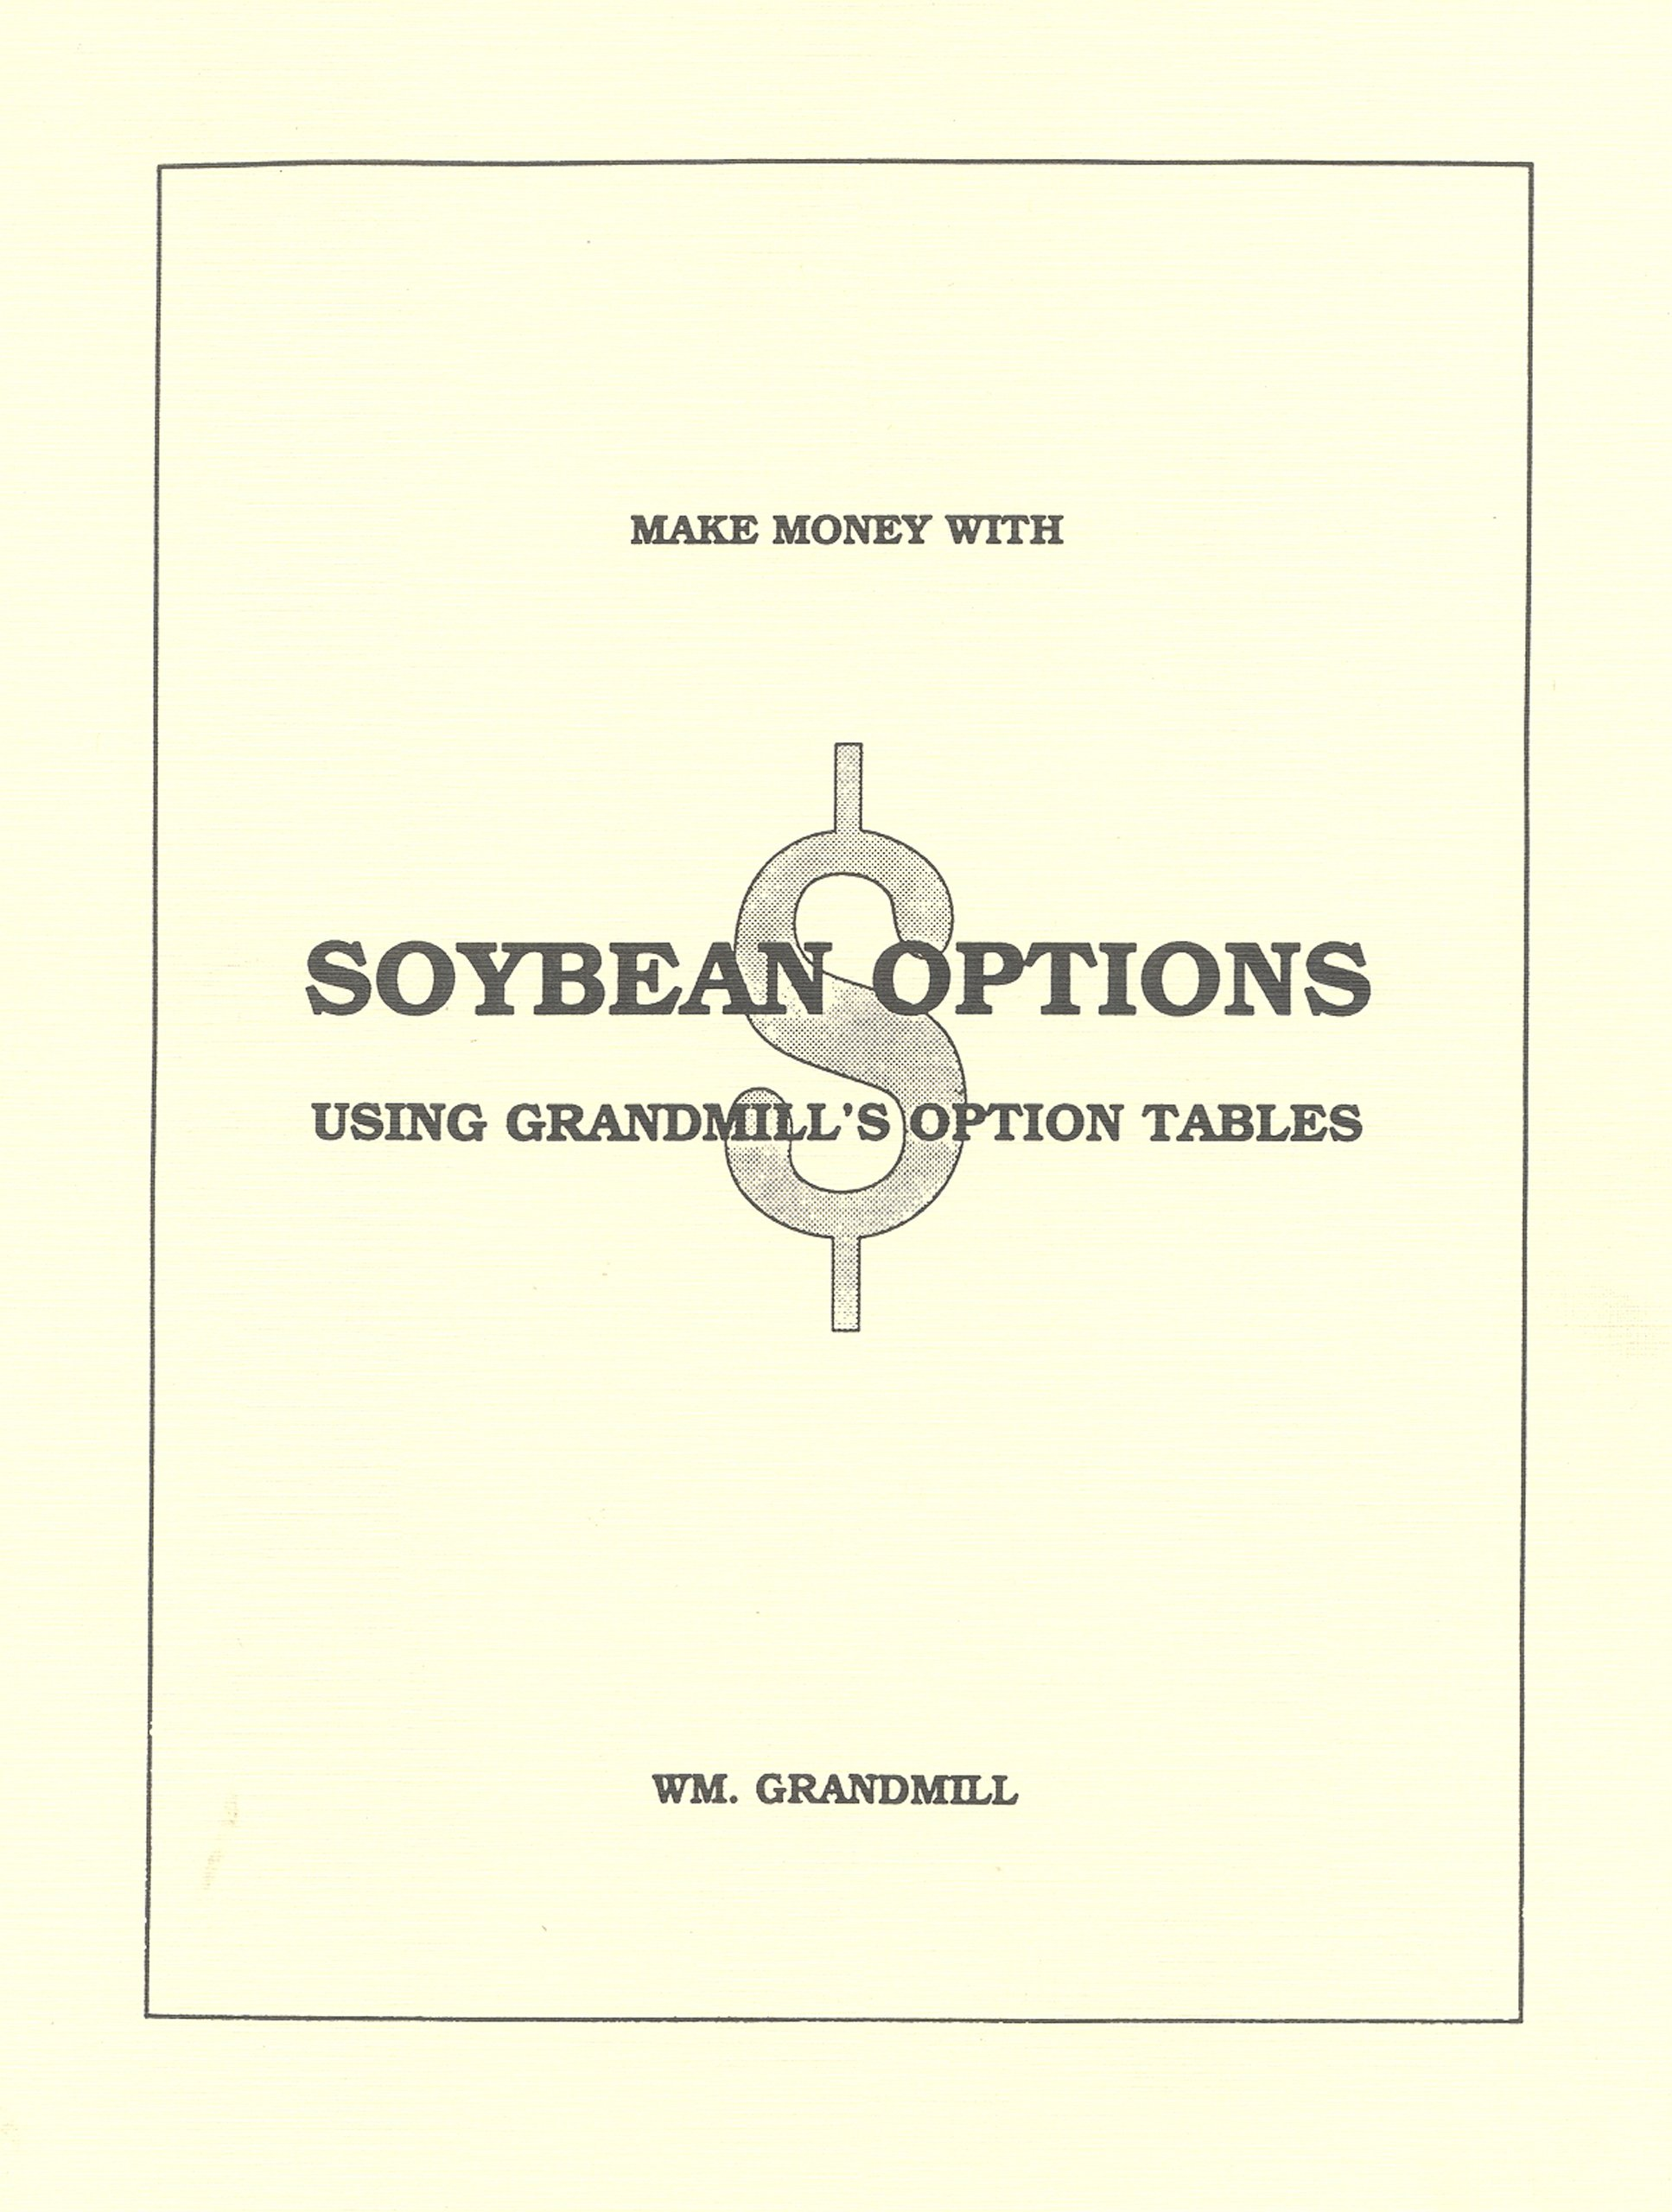 Soybean Option Soybean Options Using